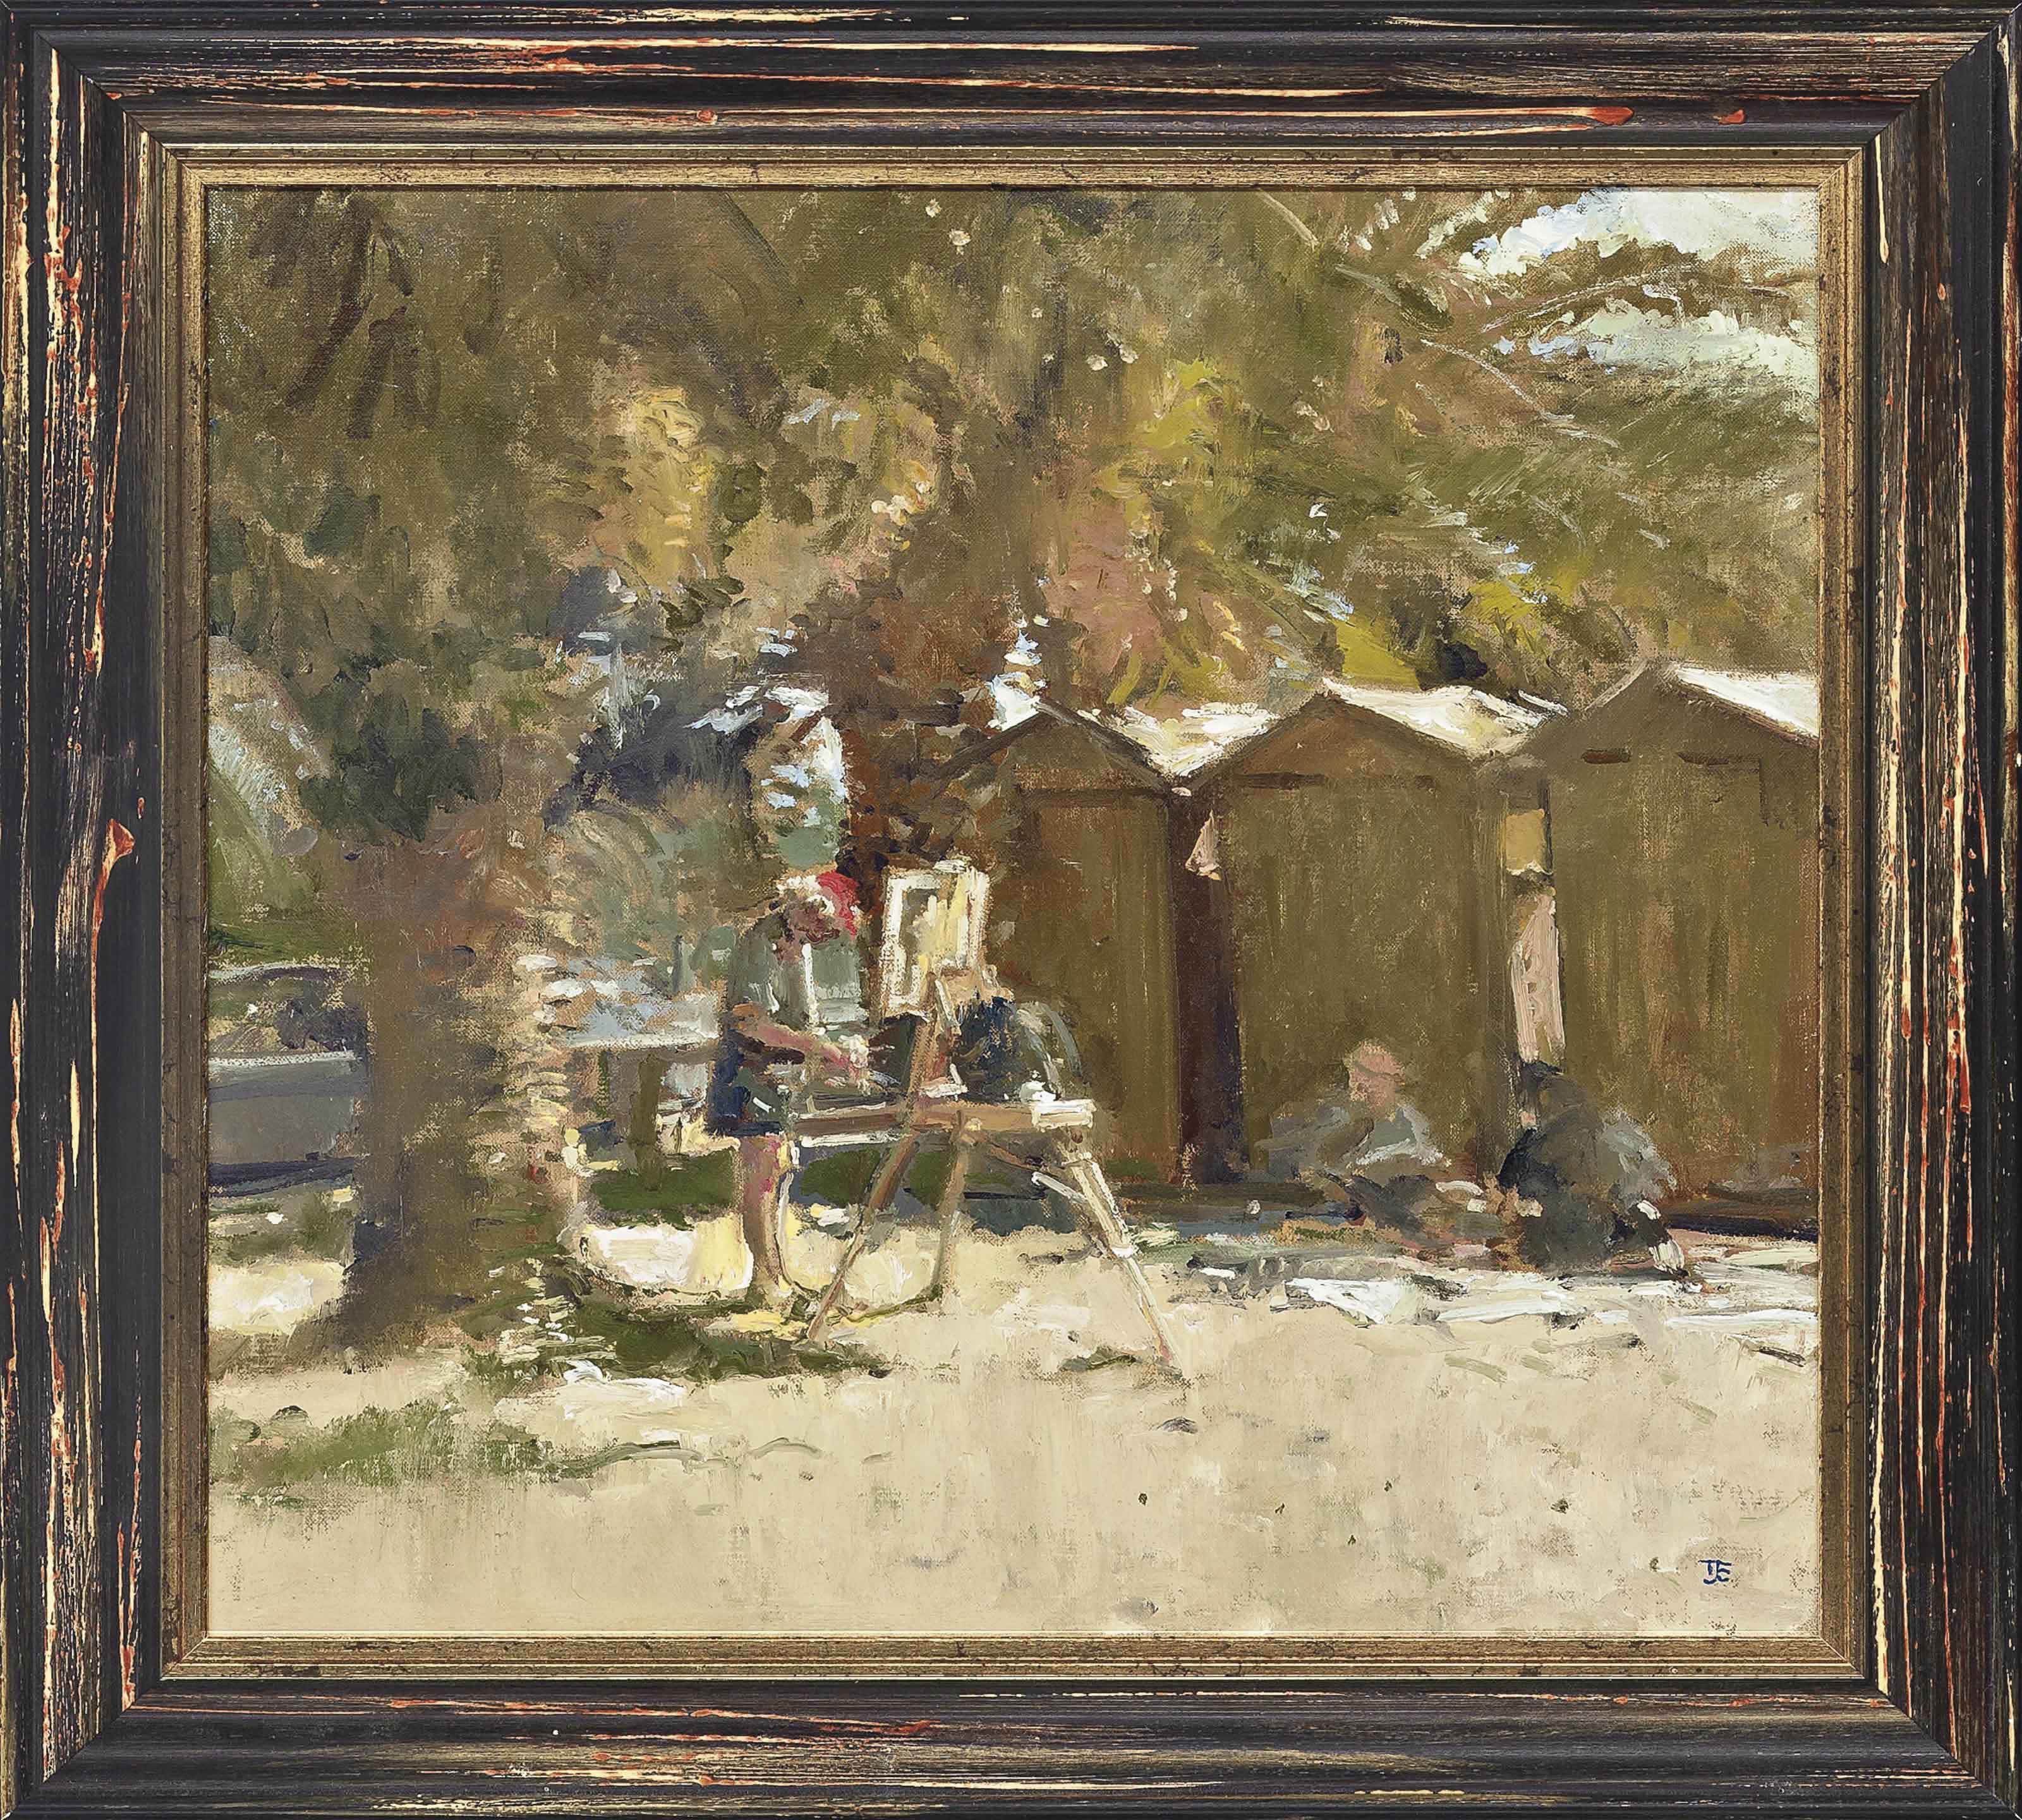 Ken Howard at Campese, Giglio